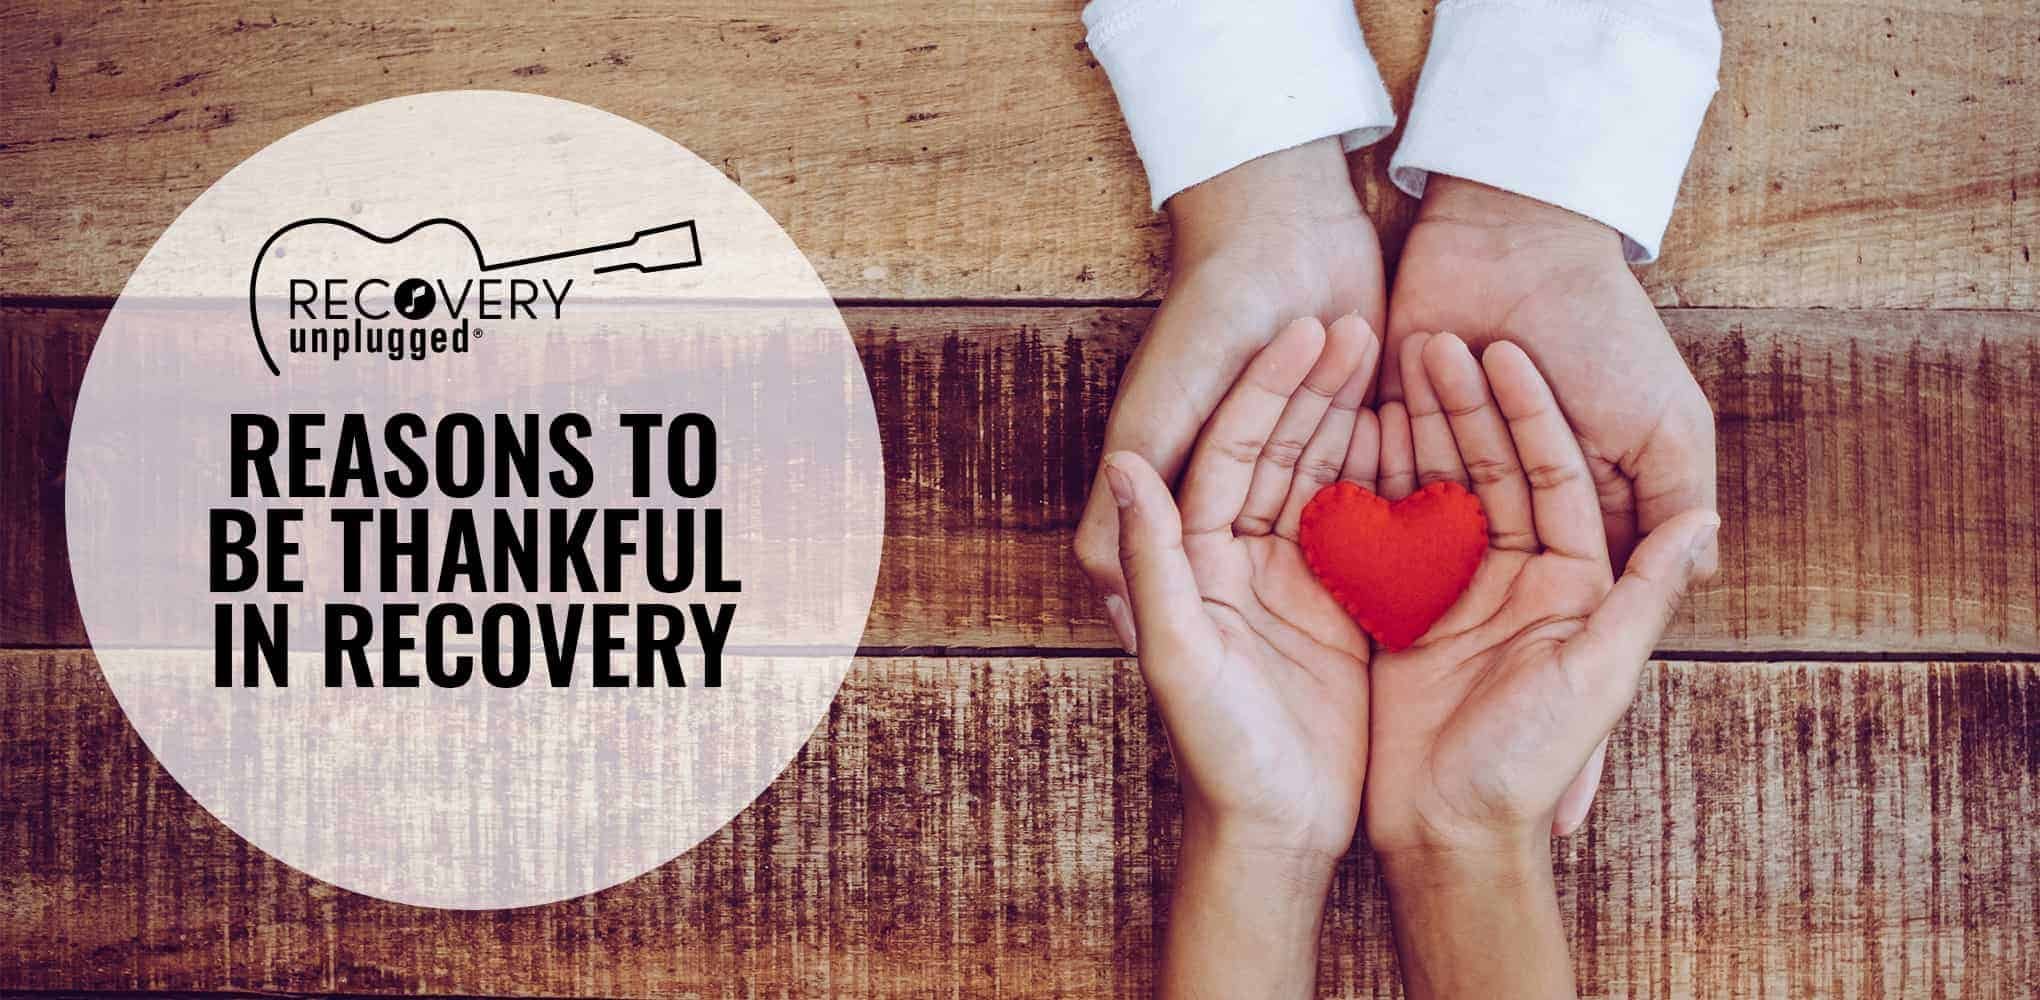 Things to be thankful for in recovery.